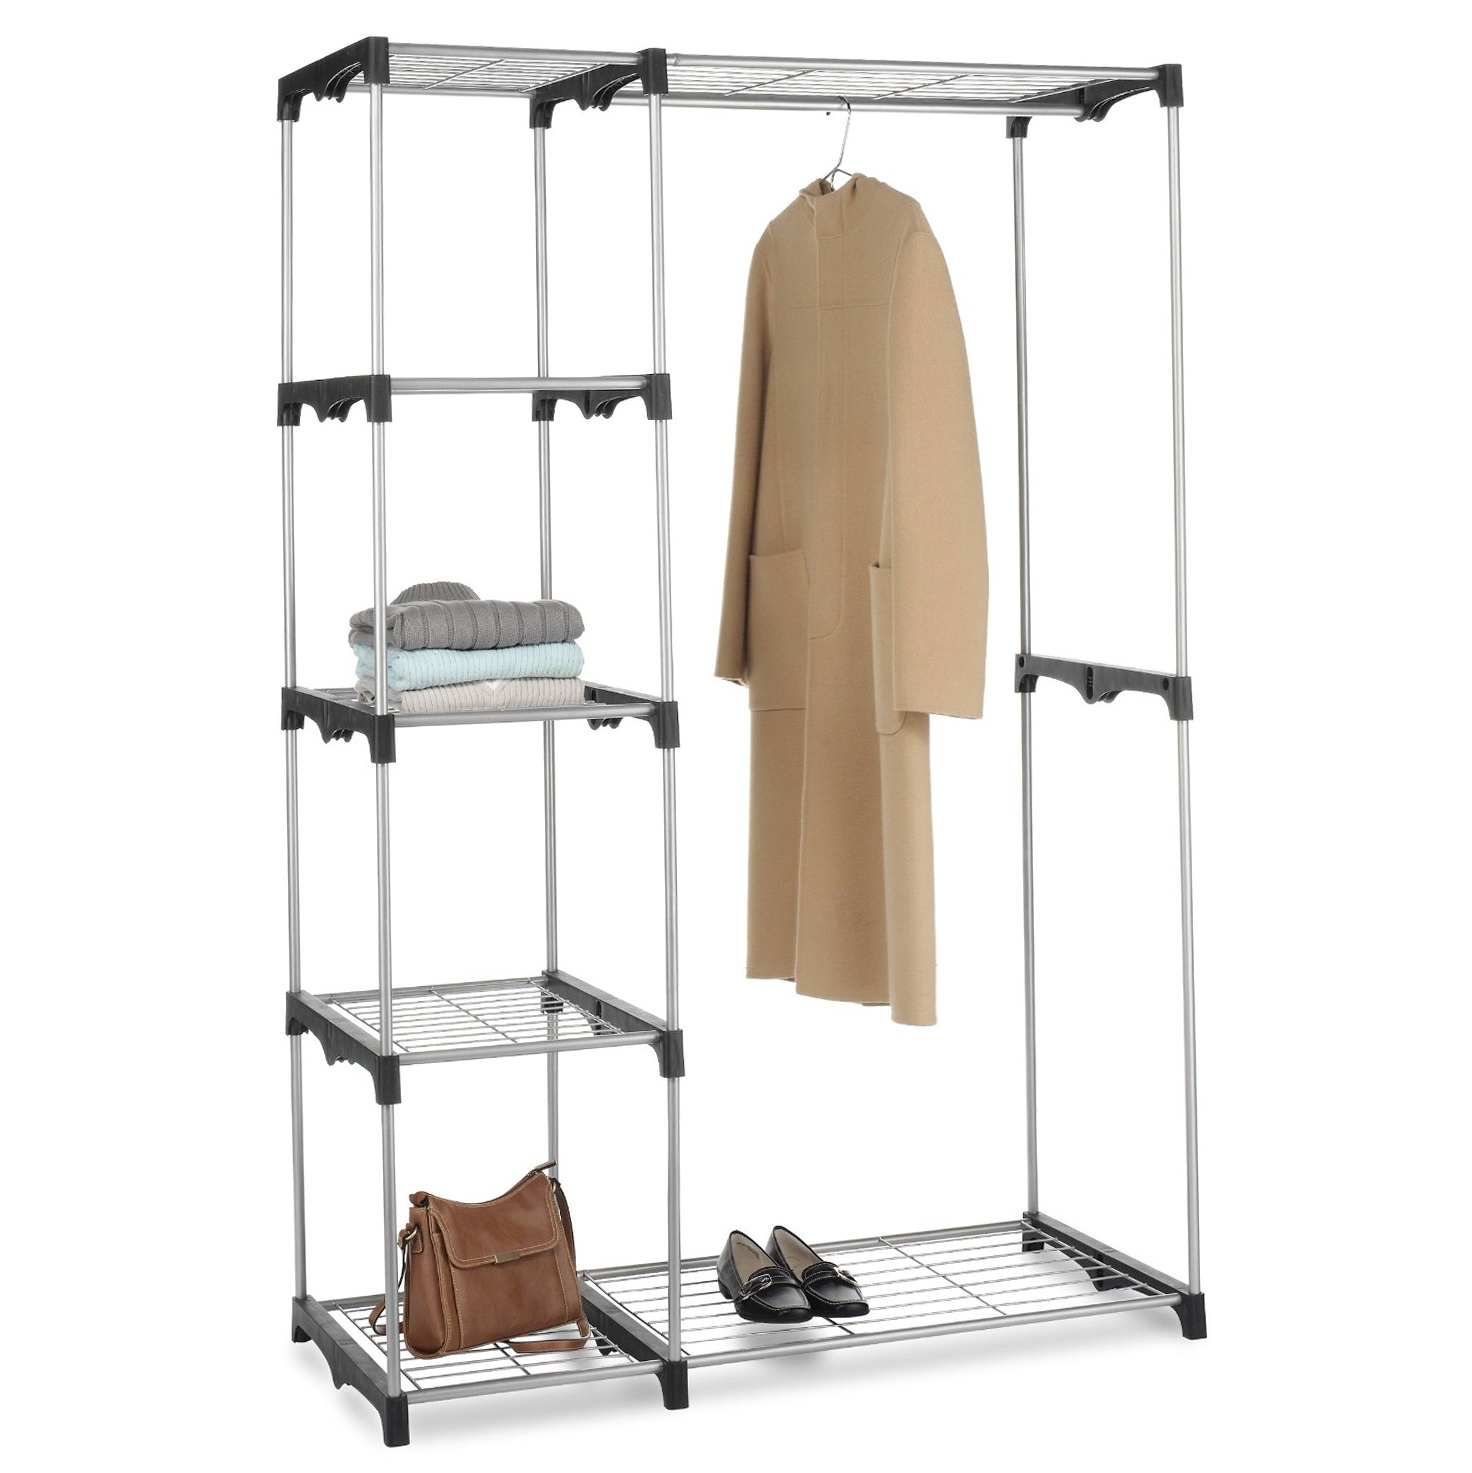 ideas image perfect simplified almosthomedogdaycare rack closet corner wardrobe com portable depot home at www standing fortune free